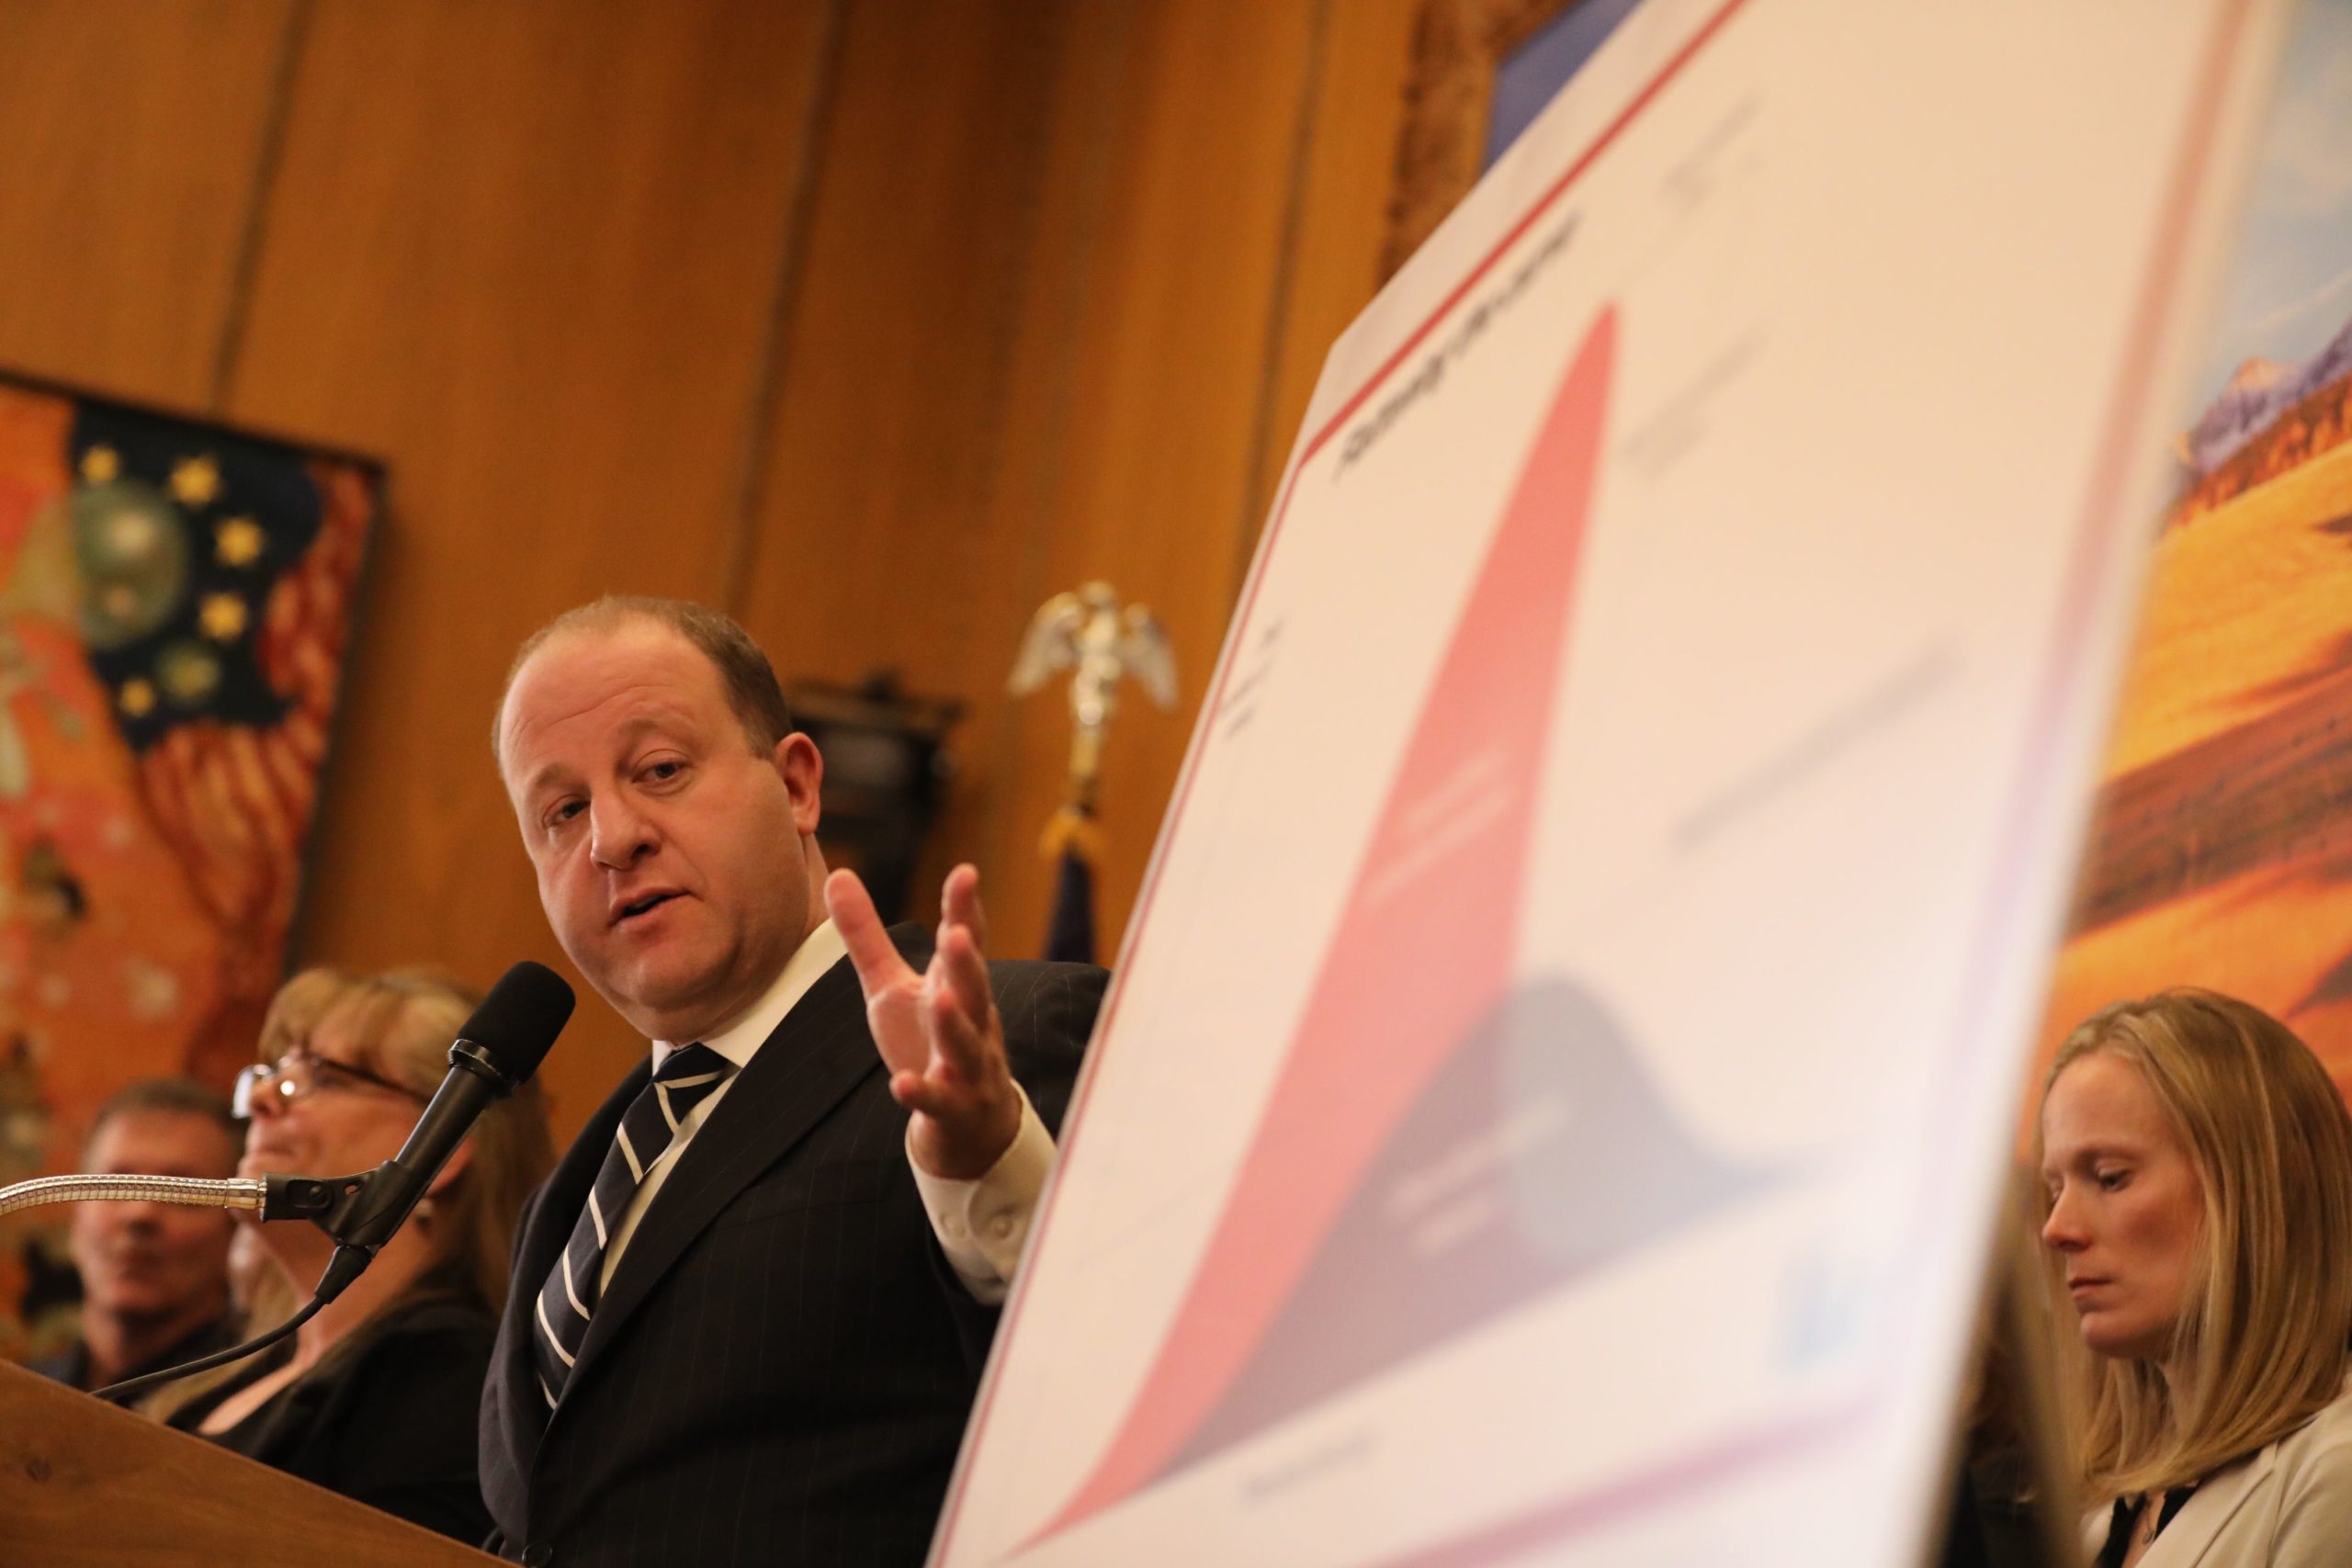 """Gov. Jared Polis provides an update on coronavirus in Colorado on Friday, March 13. Next to him is a version of the popular """"flatten the curve"""" chart about slowing the spread of an epidemic."""